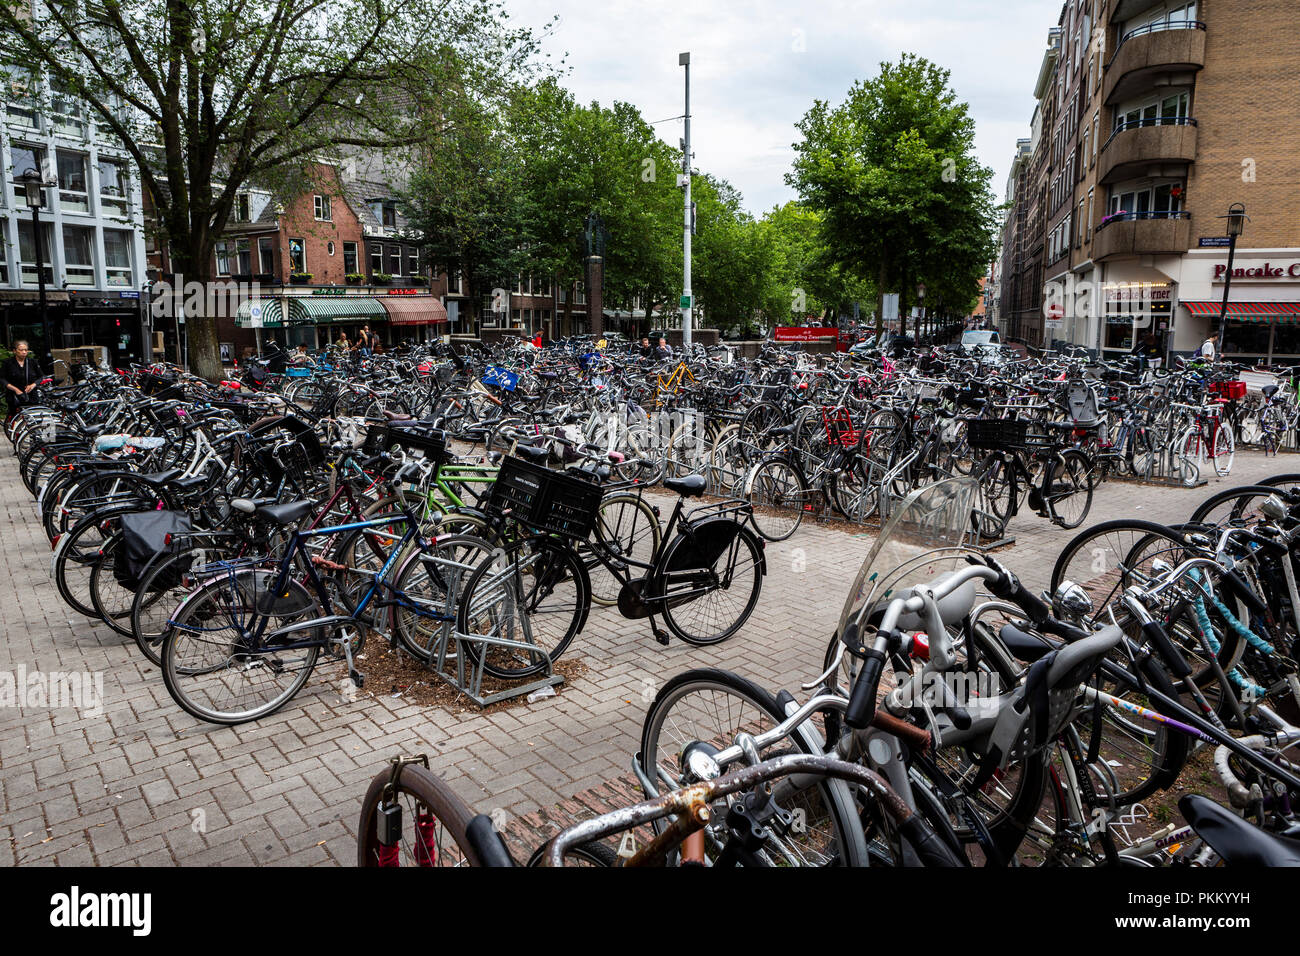 Bike usage in Amsterdam has grown by more than 40% in the last 20 years. - Stock Image